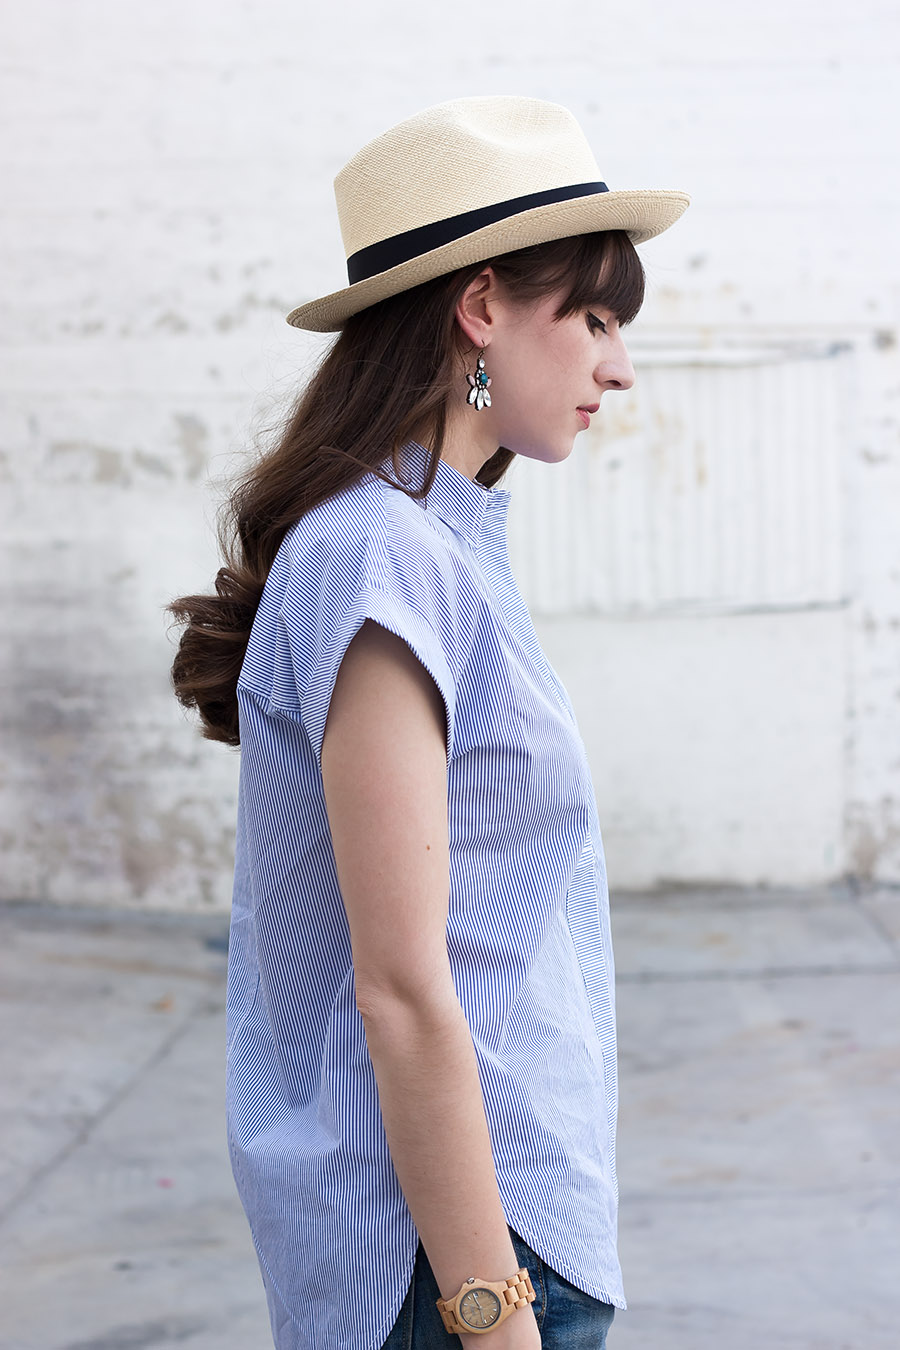 J.Crew Striped Popover, J.Crew Hat, Summer Style